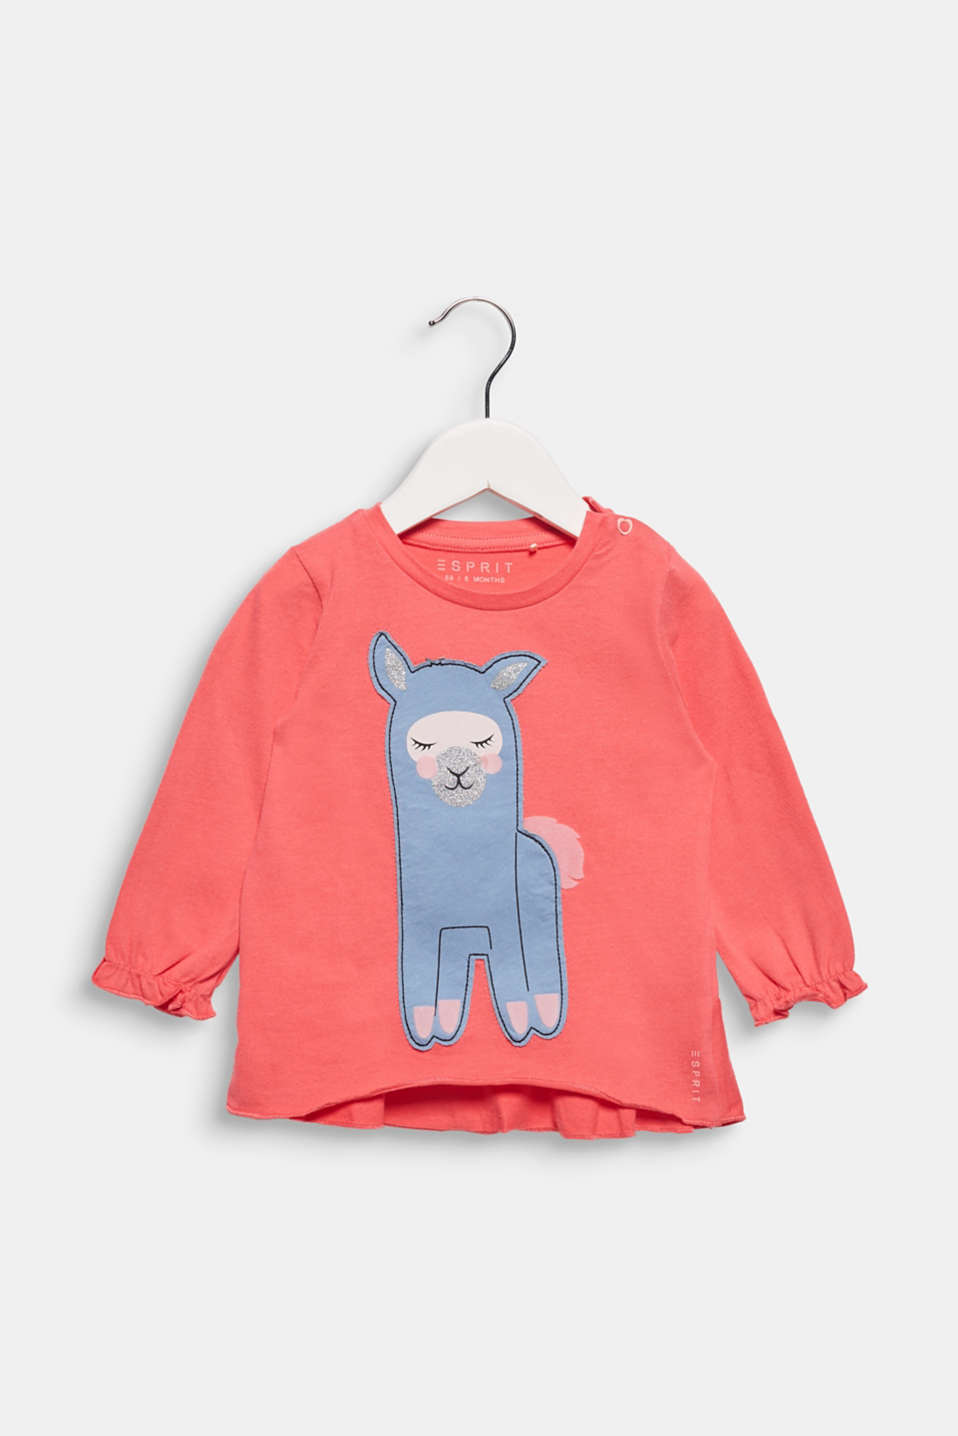 Esprit - Long sleeve top with llama, 100% cotton